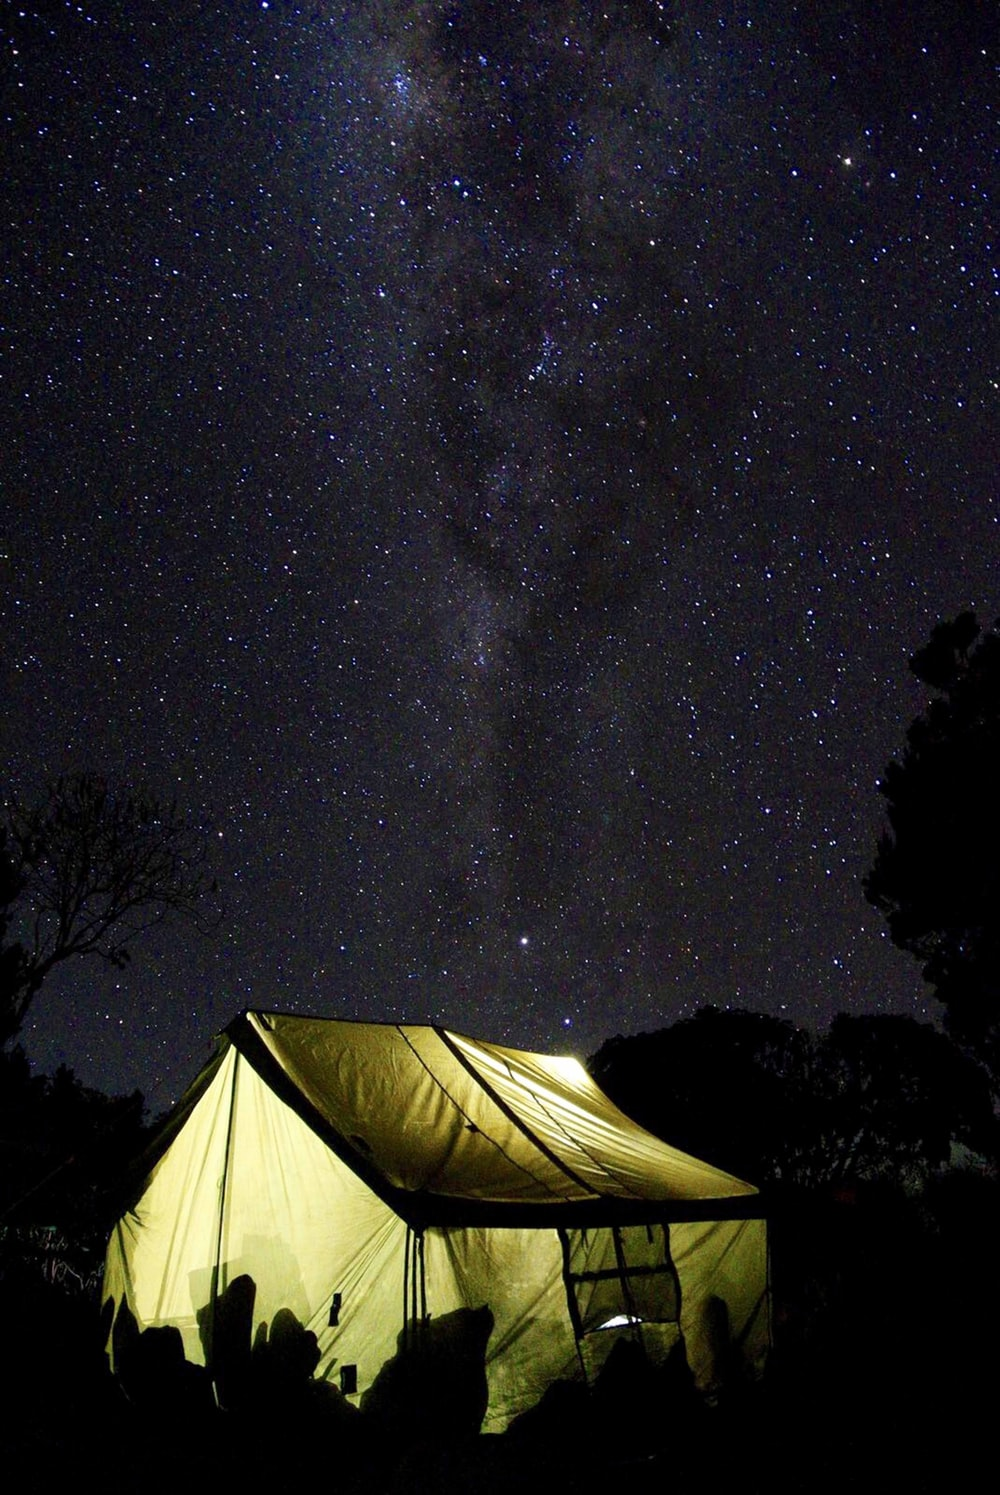 milky way galaxy under yellow camping tent